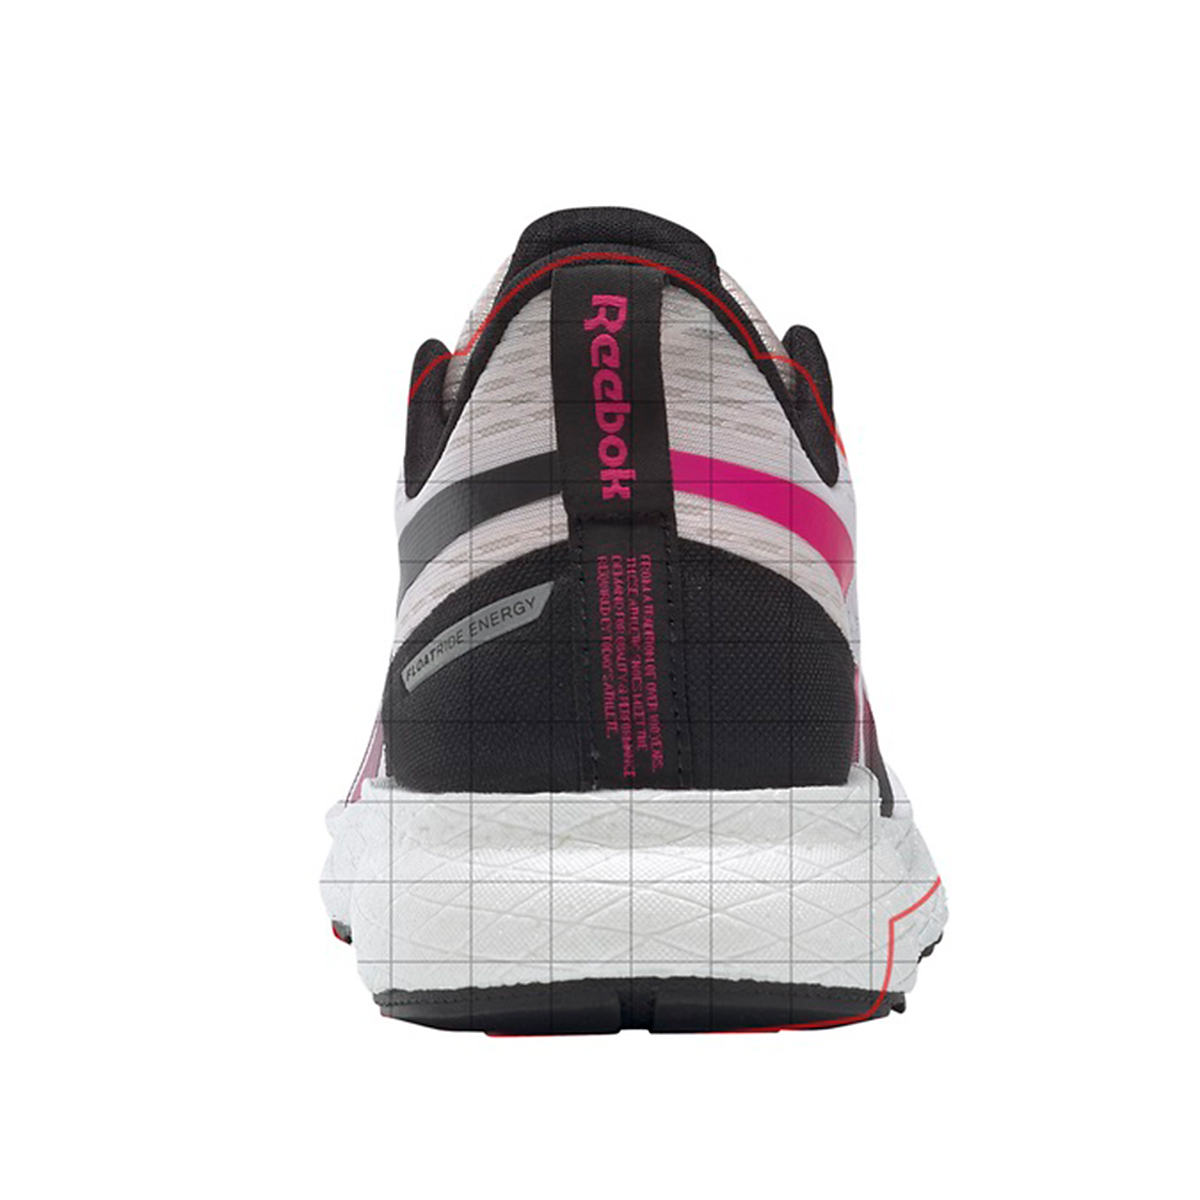 Women's Reebok Forever Floatride Energy 2.0 Running Shoe - Color: Glass Pink/Black/Proud Pink - Size: 5 - Width: Regular, Glass Pink/Black/Proud Pink, large, image 4